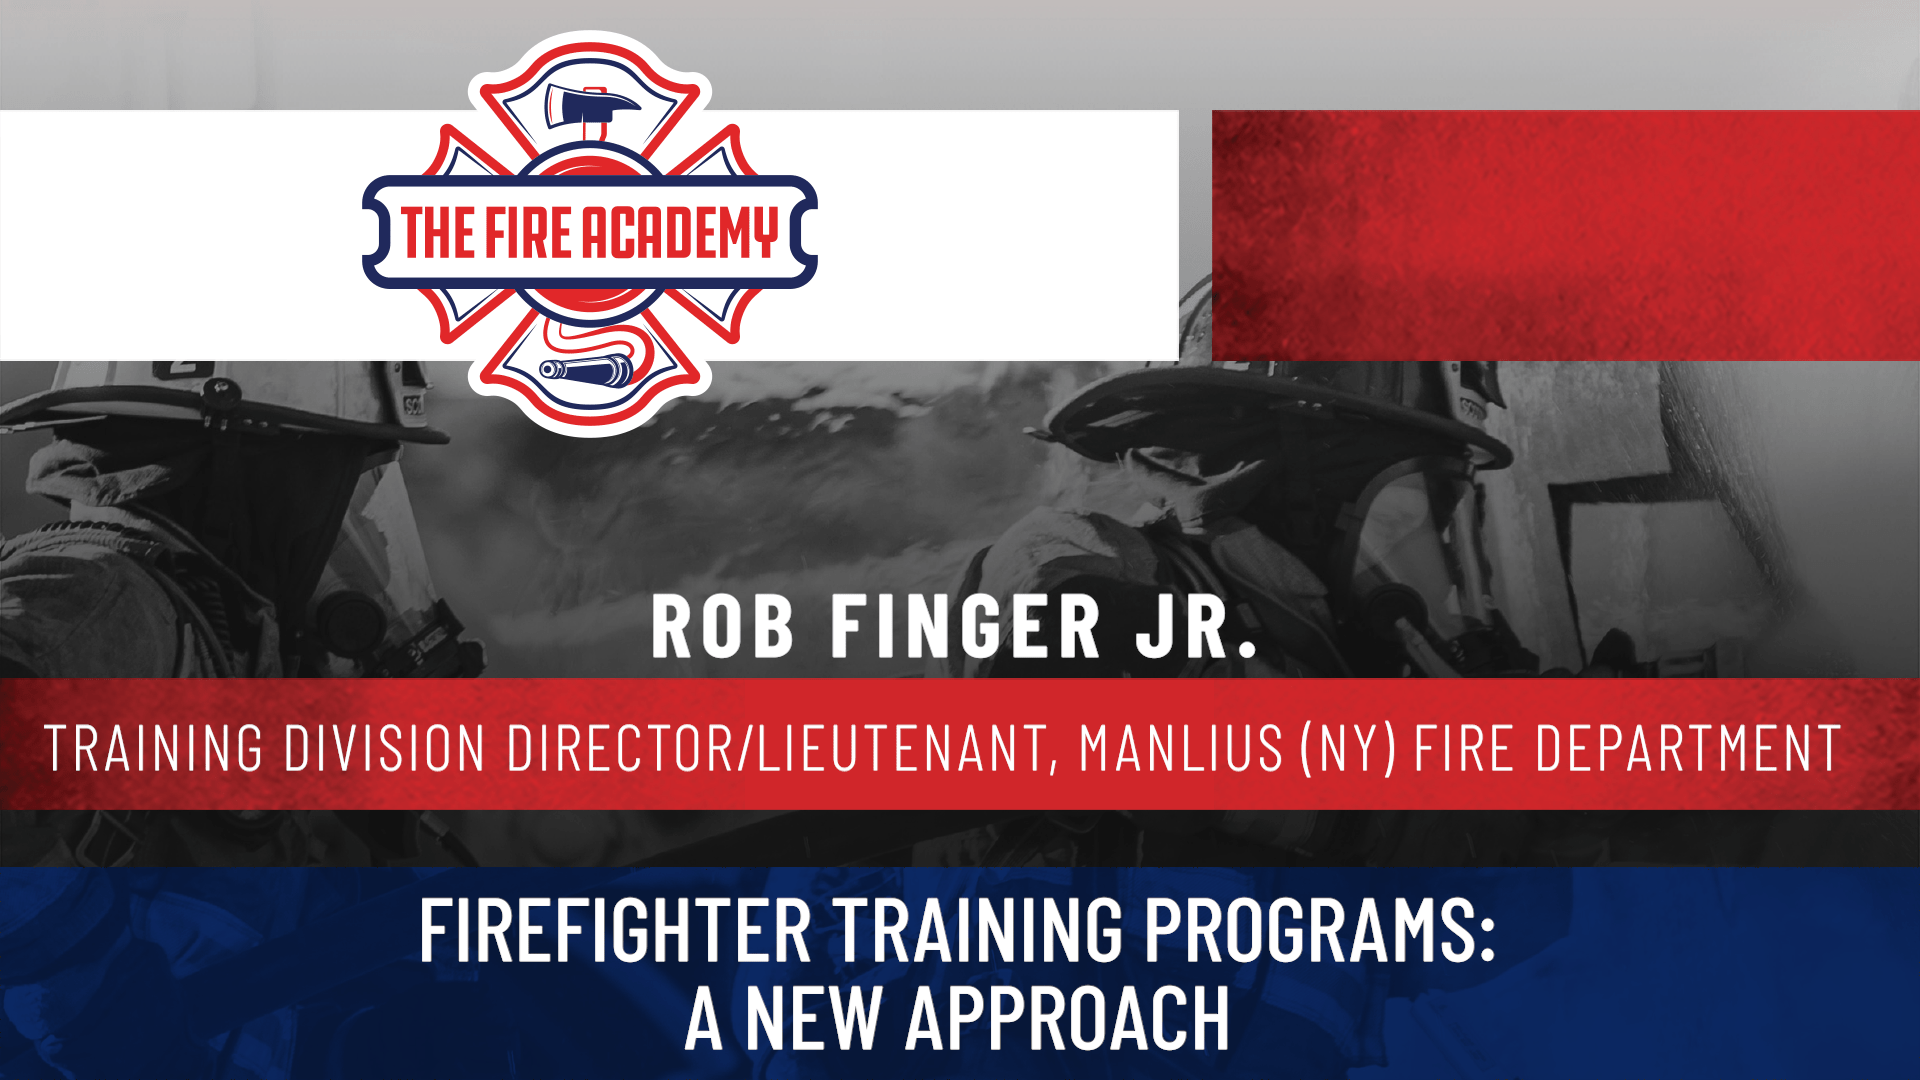 Firefighter Training Programs: A New Approach